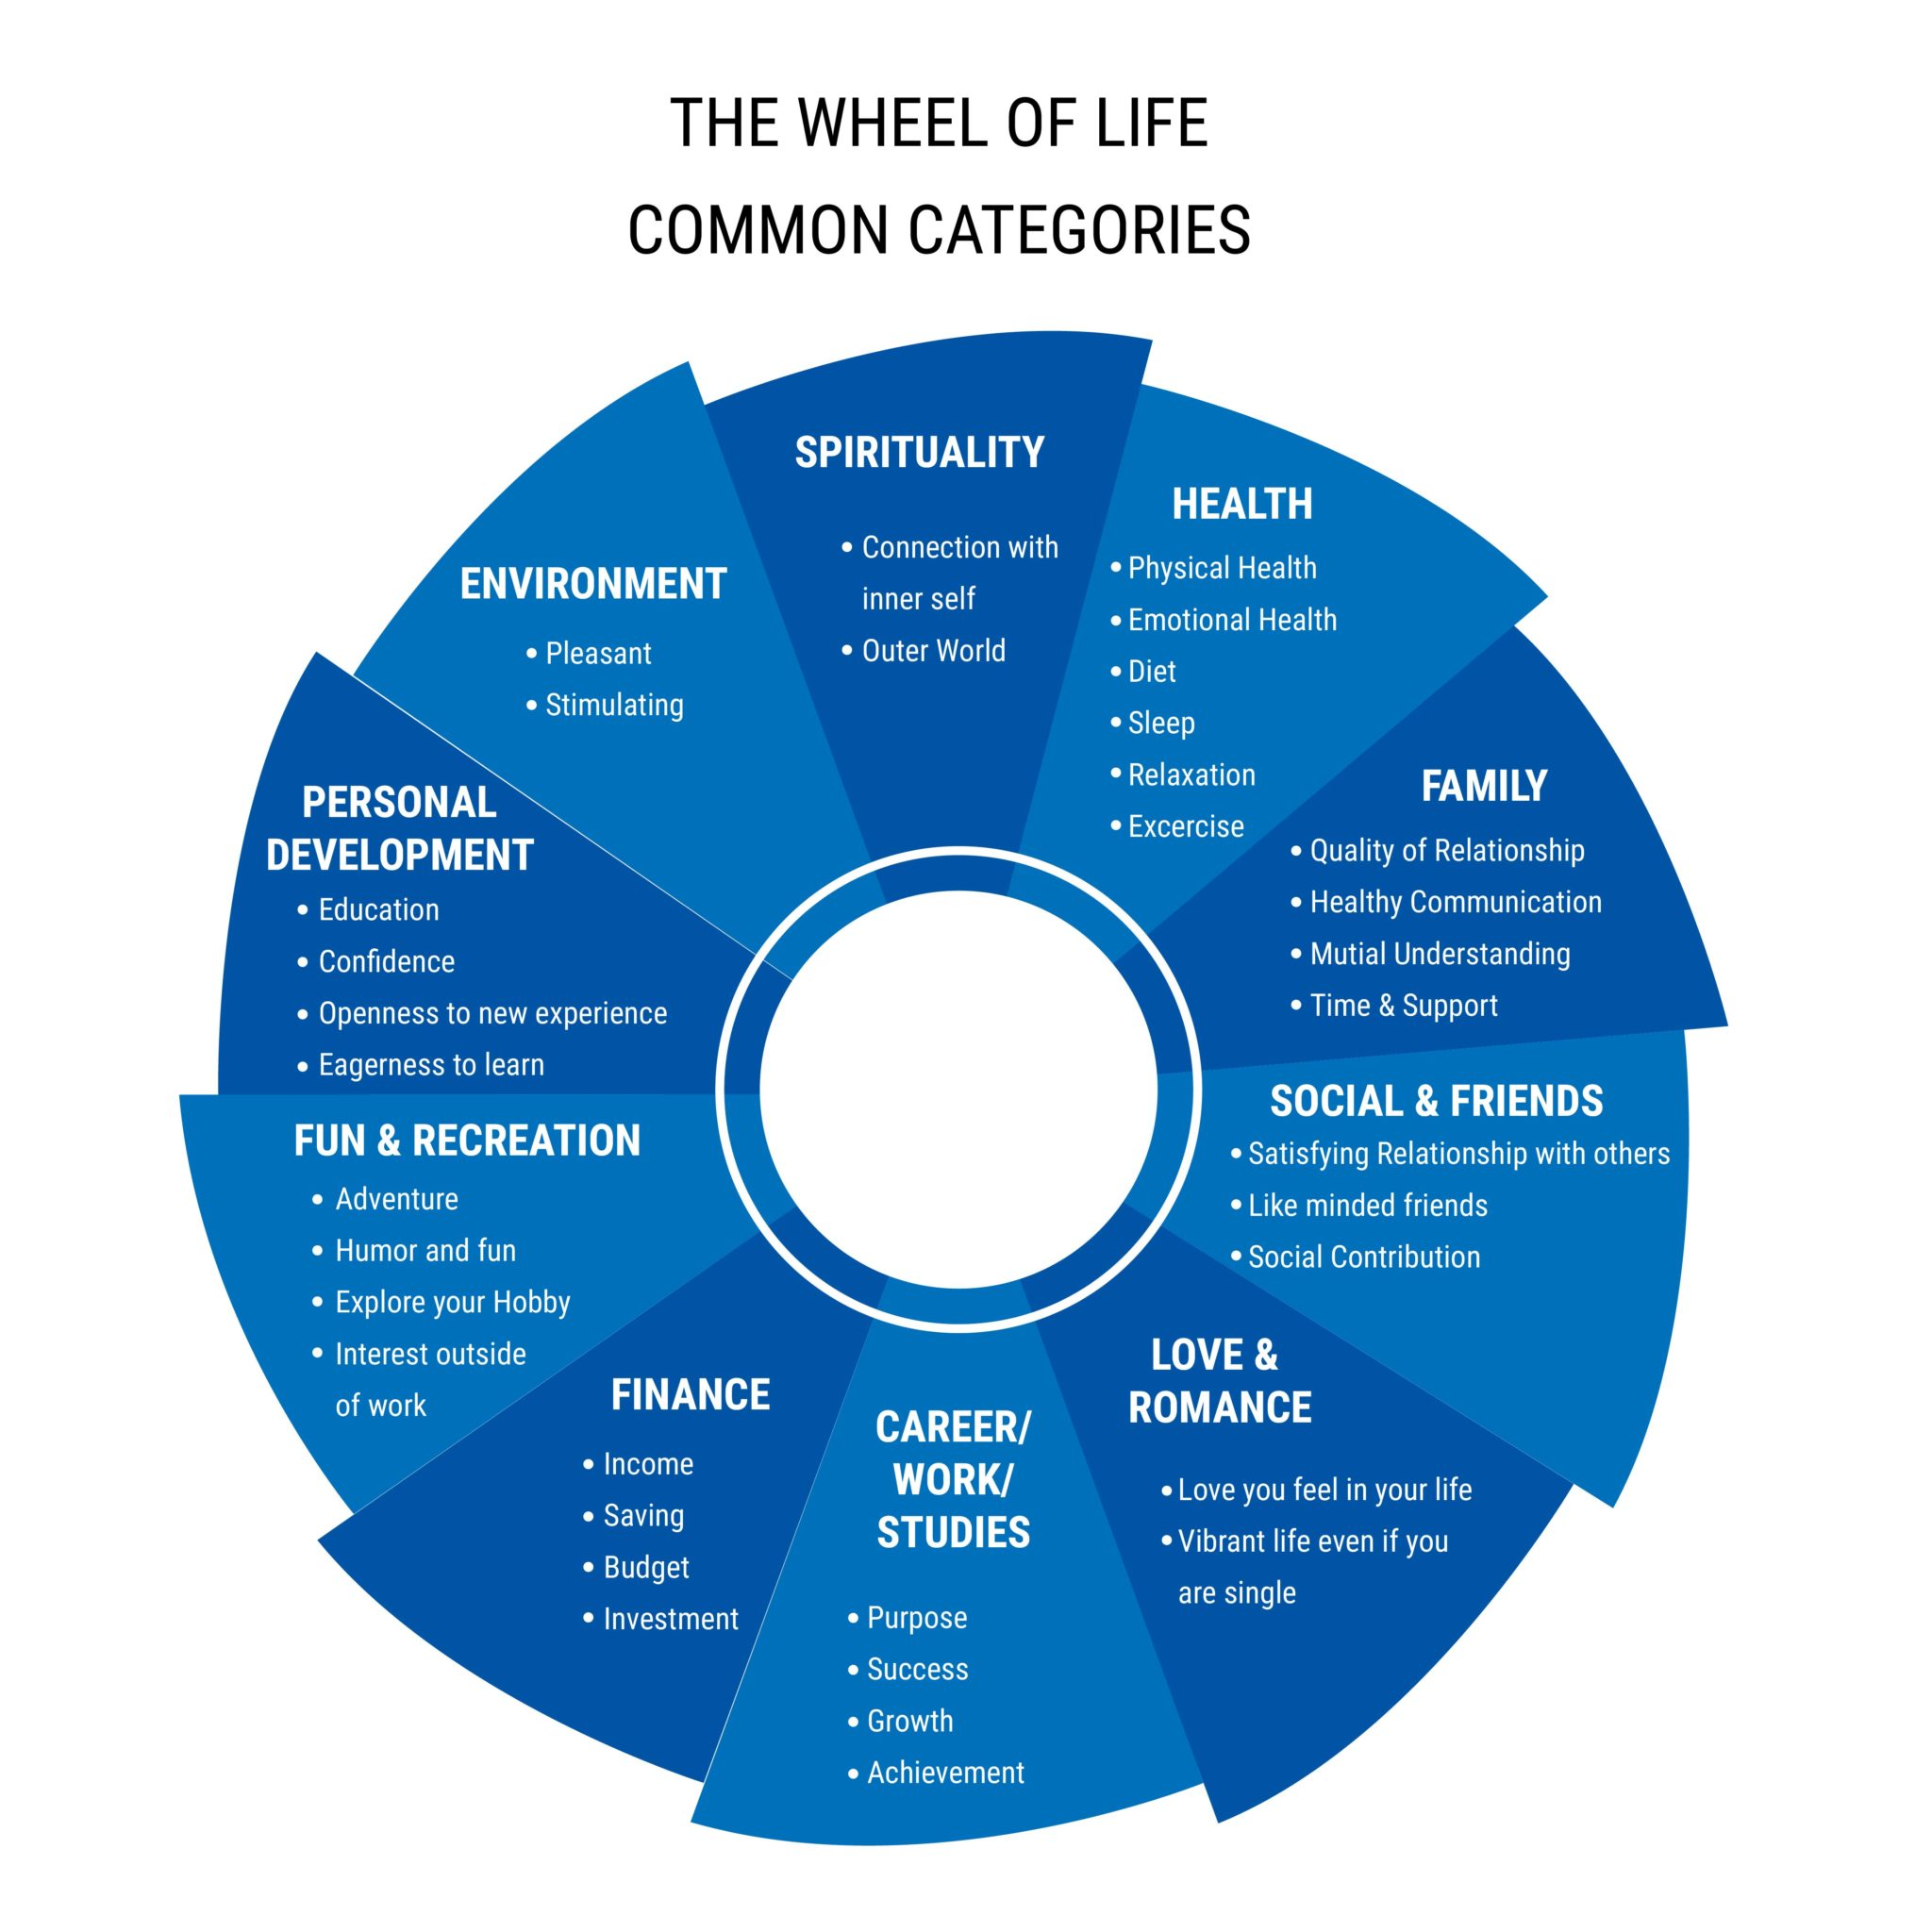 THE WHEEL OF LIFE COMMON CATEGORIES